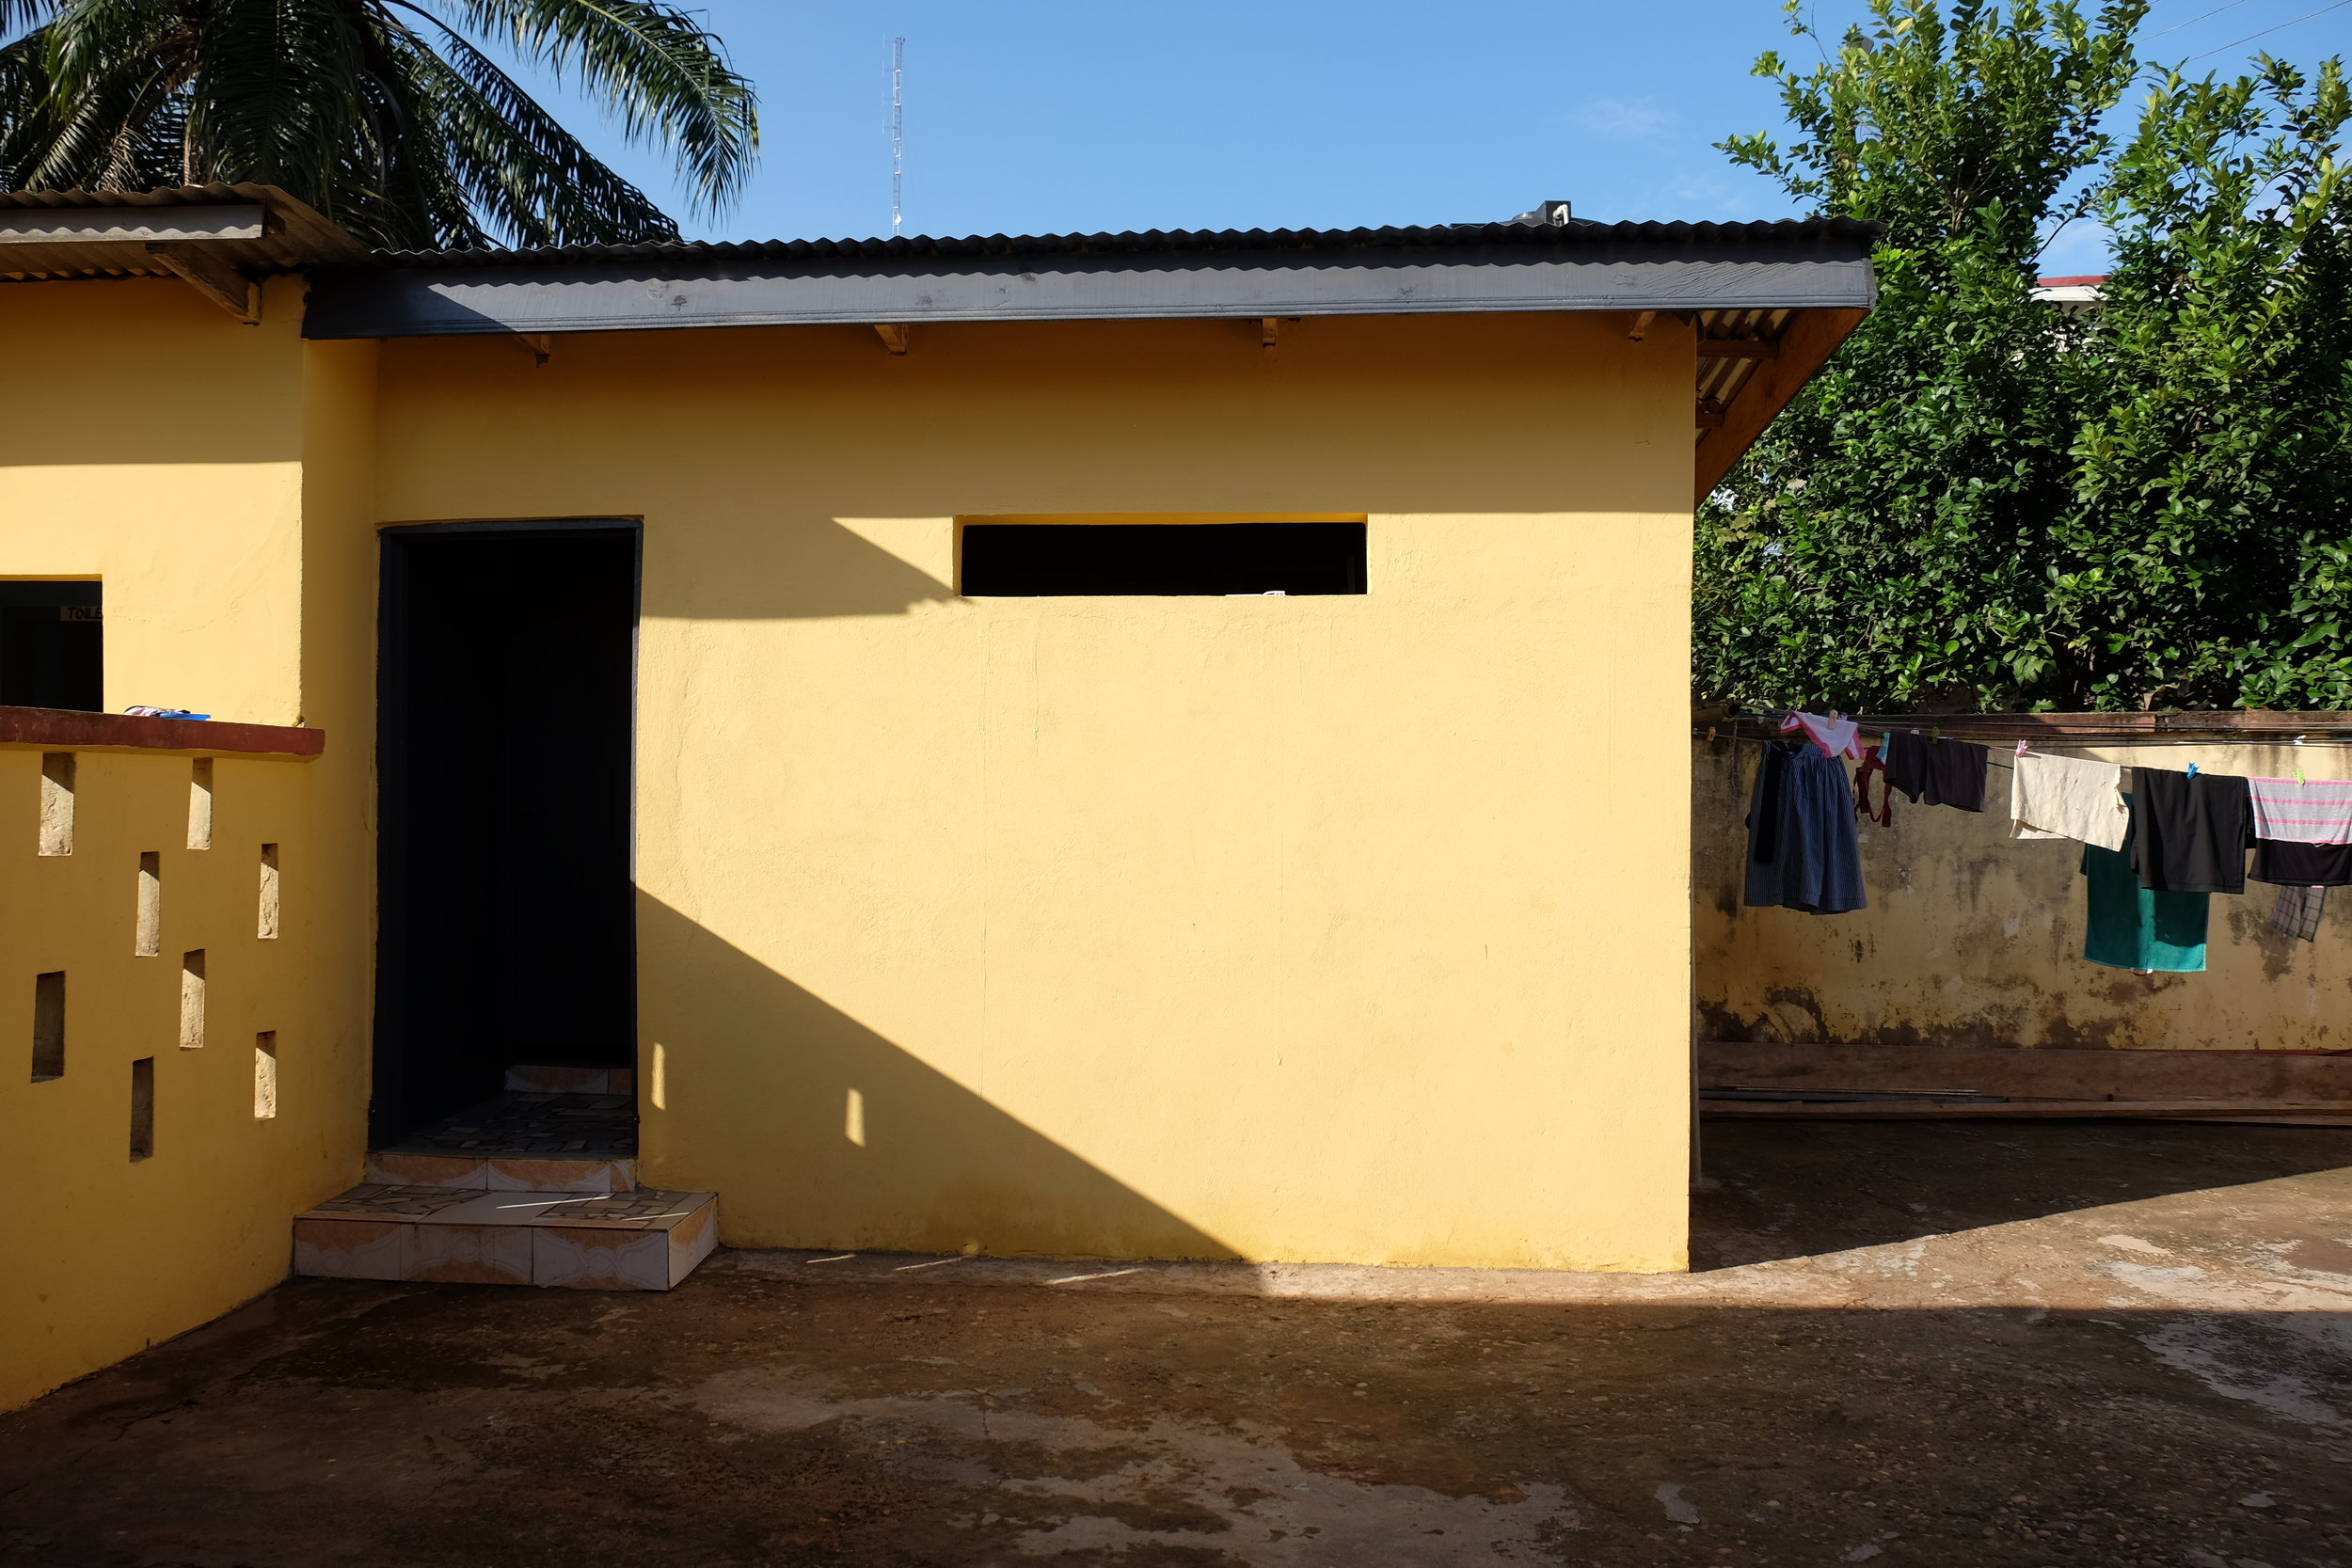 The house has seen some much-needed improvements. This structure was added on to the right of the existing bathroom with two new showers and toilets.